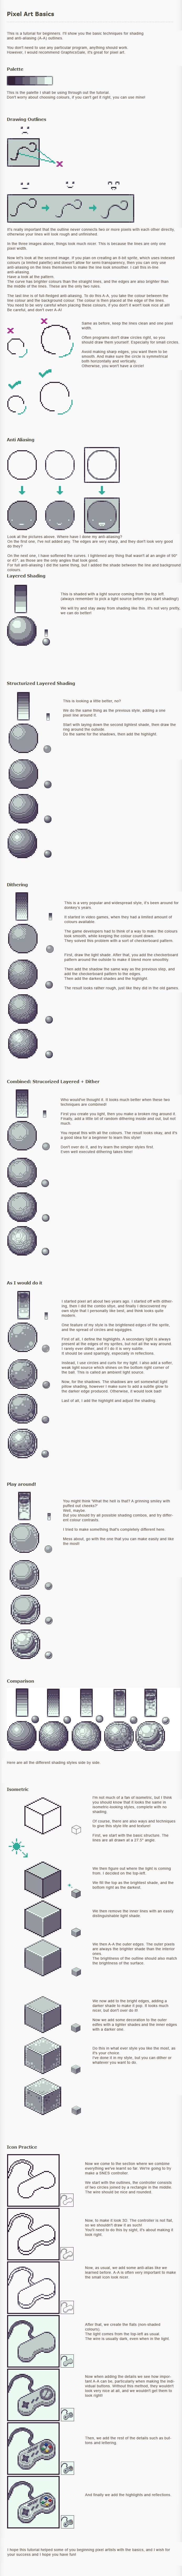 Awesome pixeling tutorial